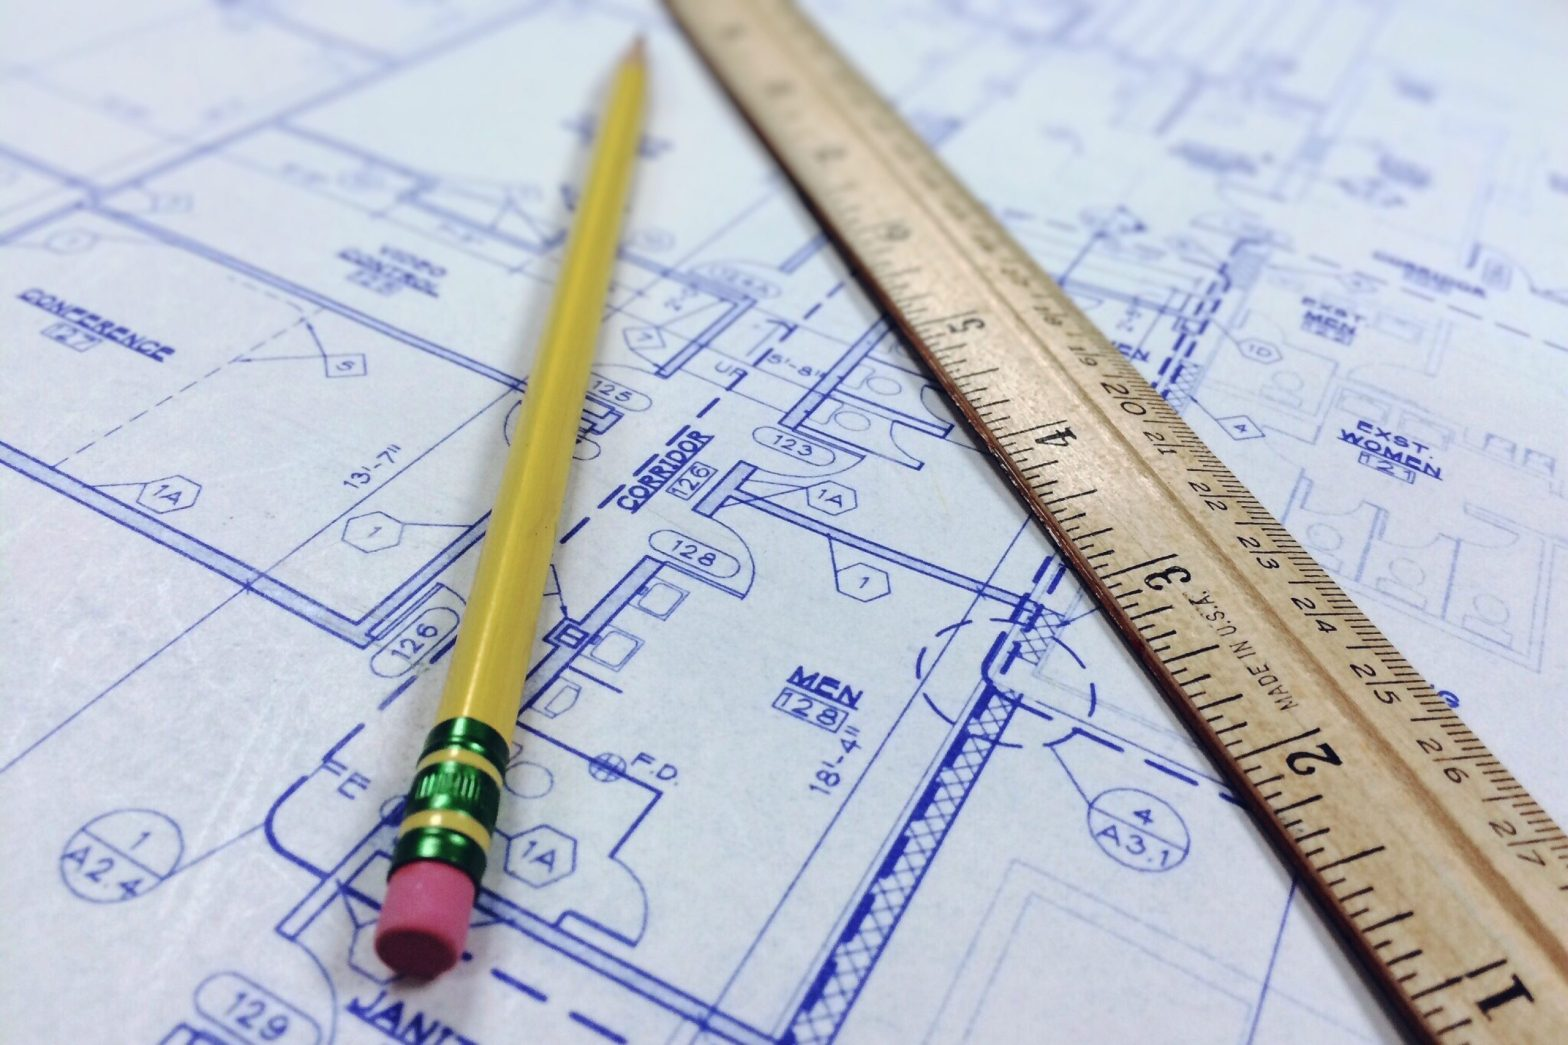 Pencil, ruler and blueprint to create love